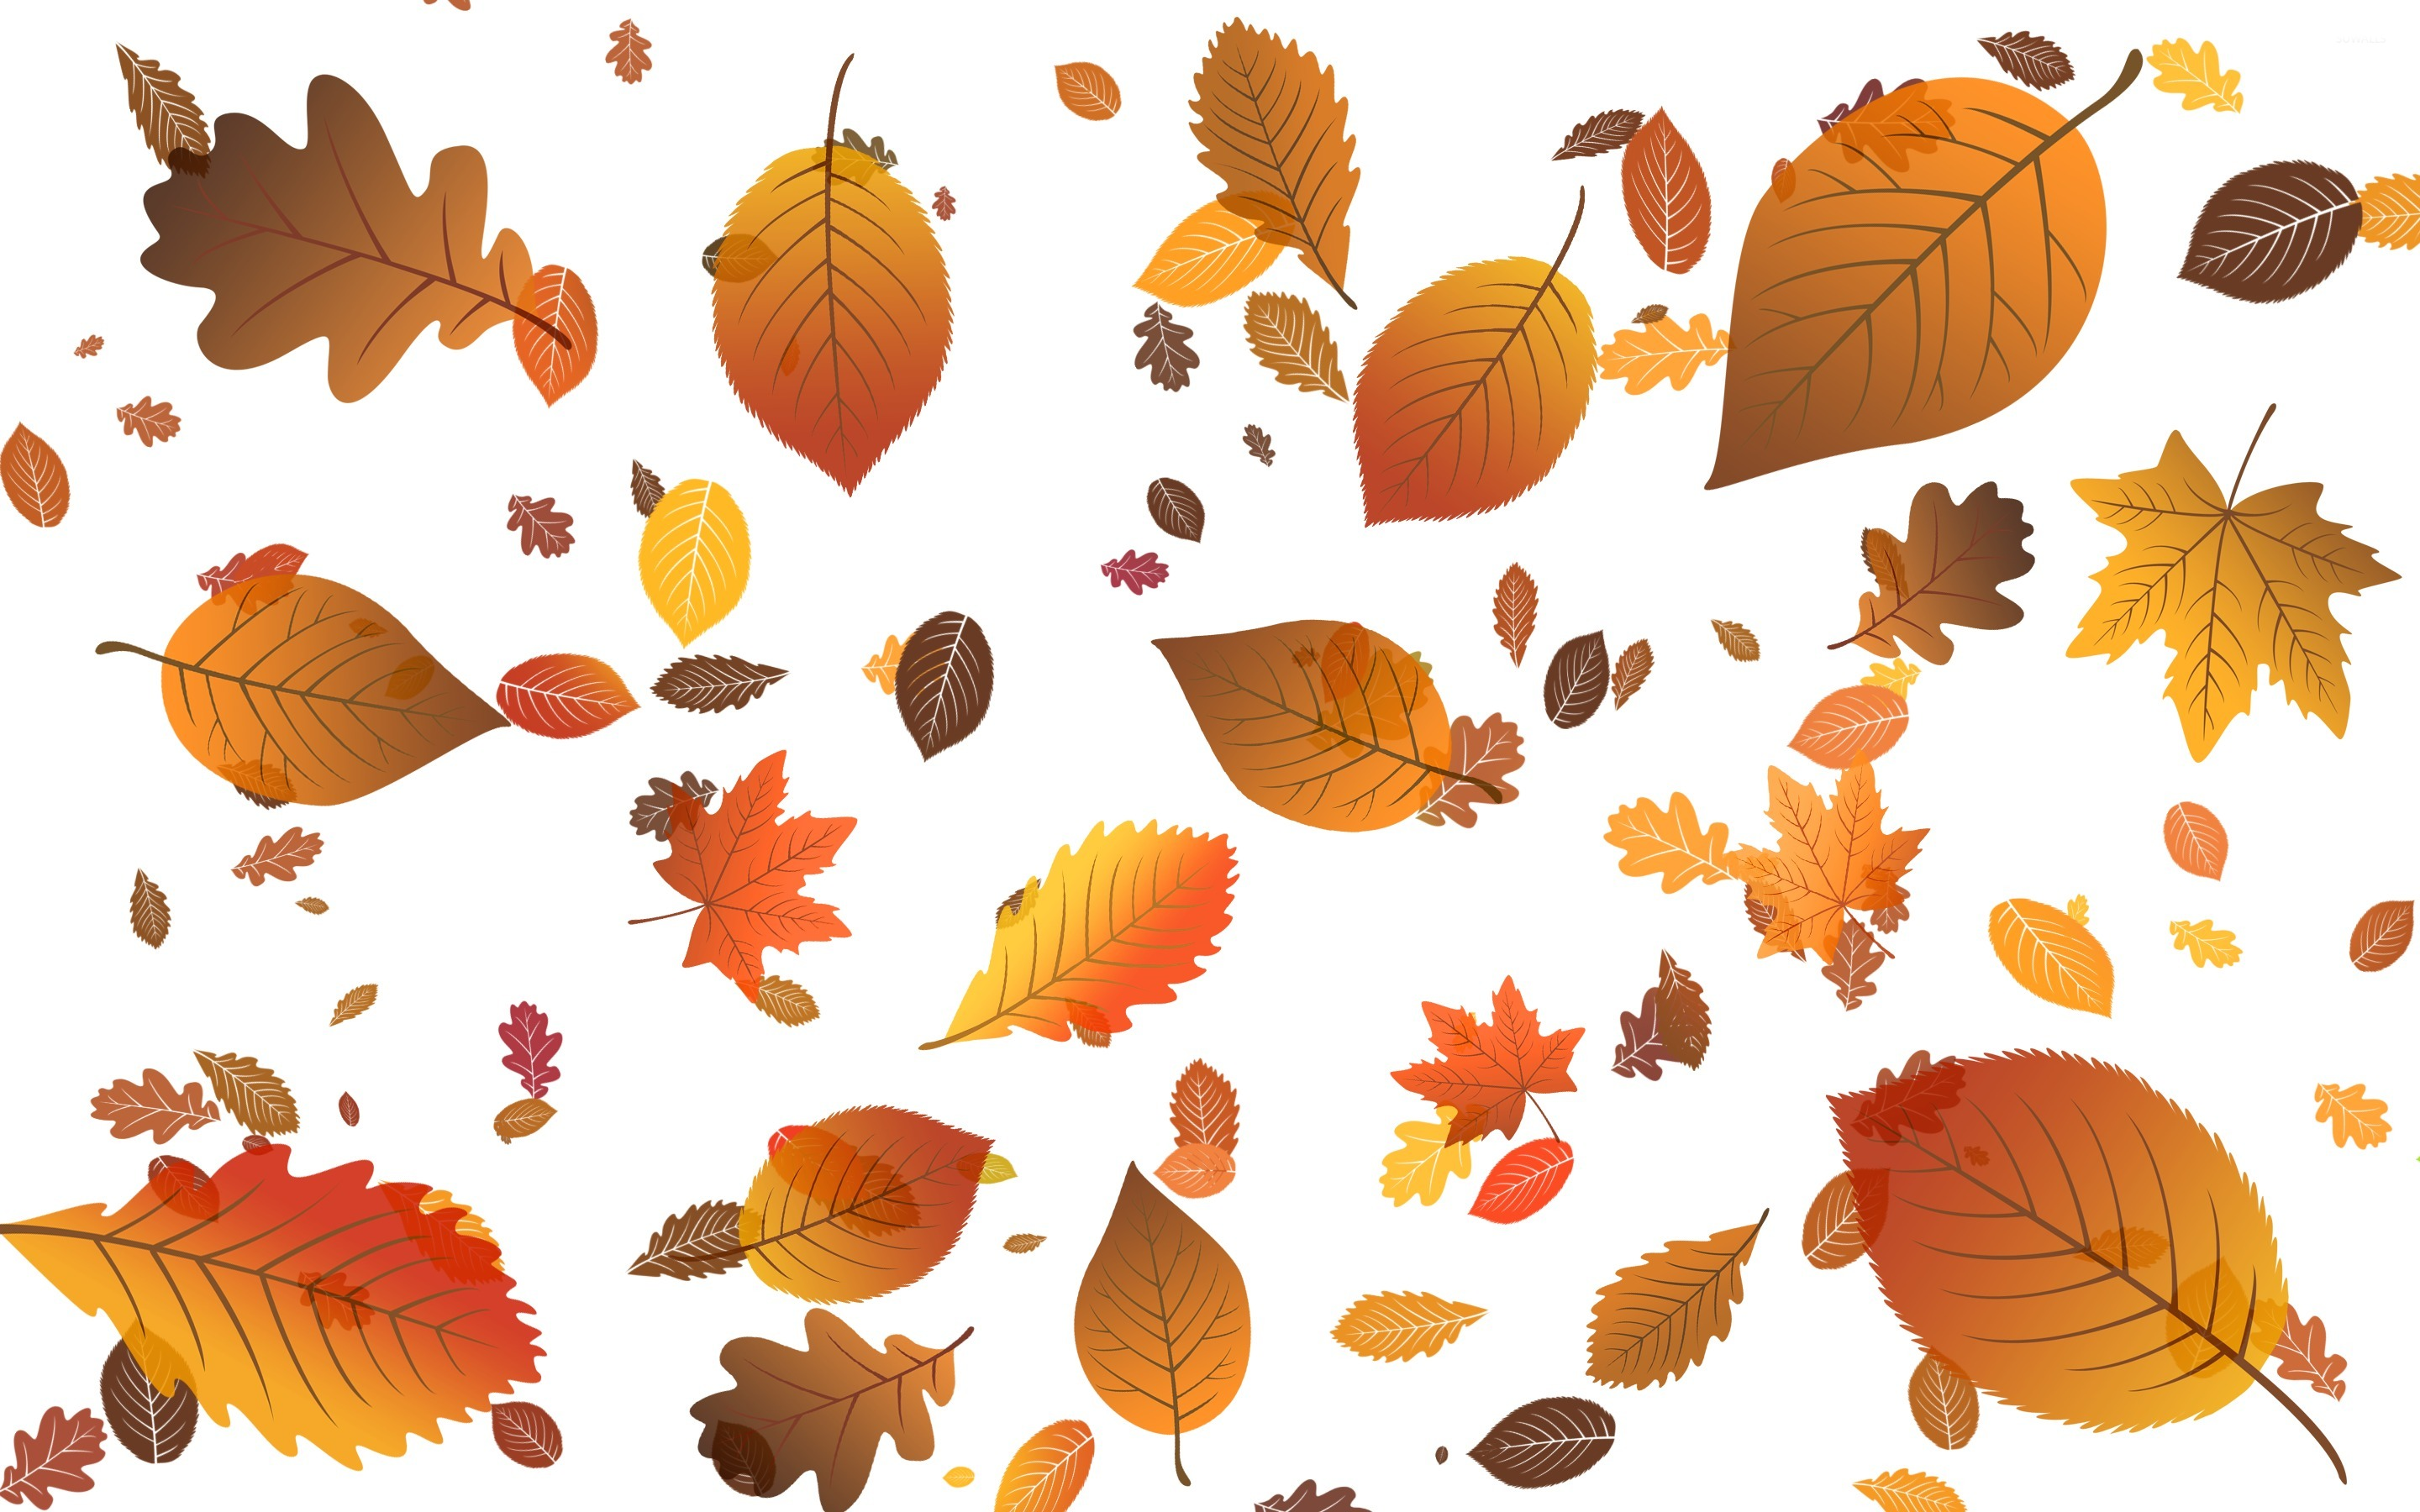 Falling leaves wallpaper